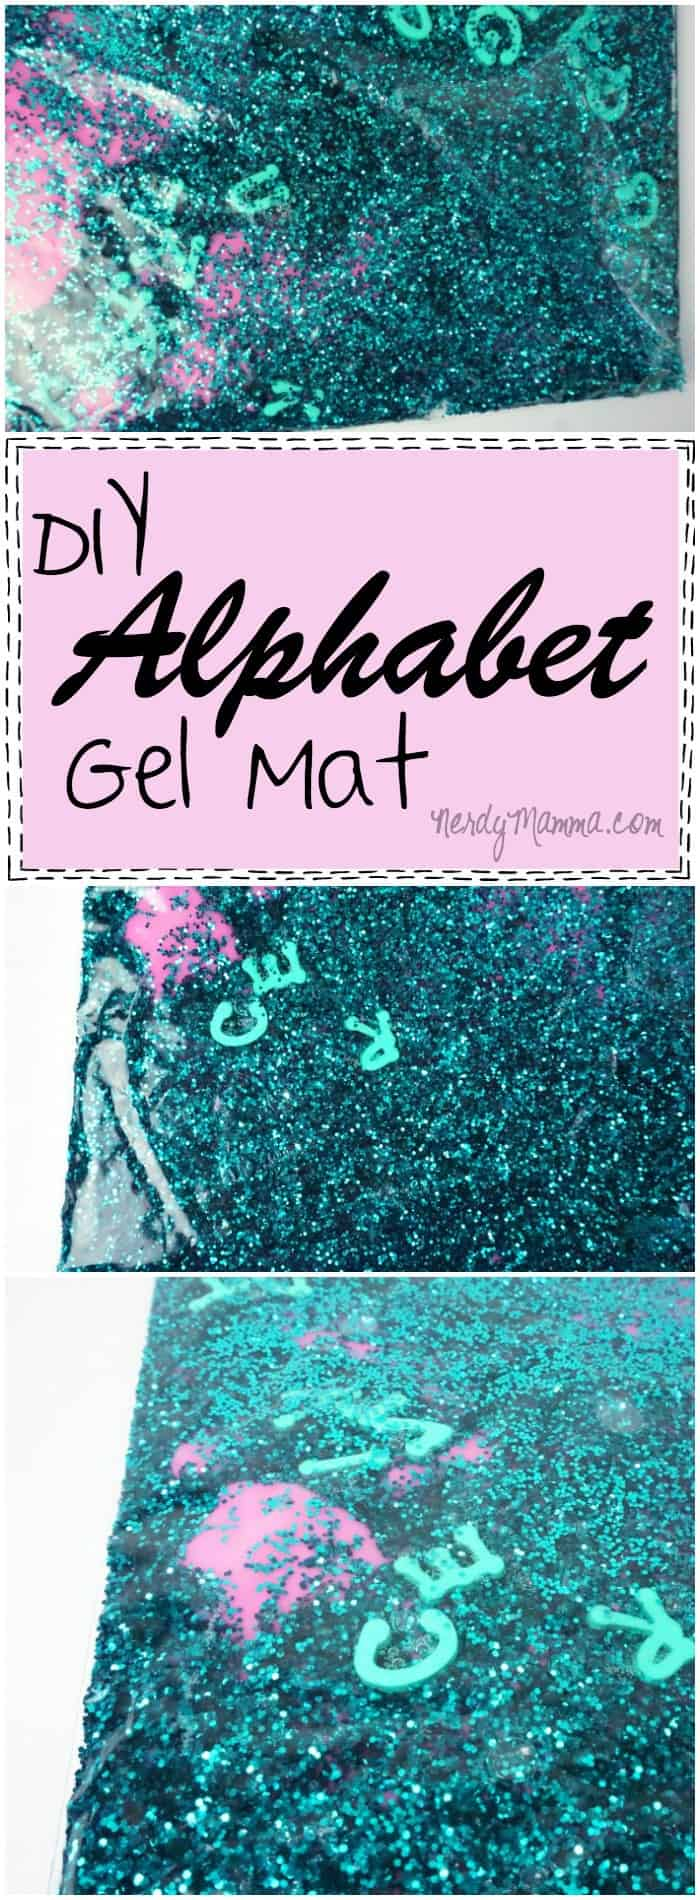 The crazy colors of this alphabet gel mat are so cool! I can't wait to make this for my preschooler. She'll love the glitter and the letters! LOL!